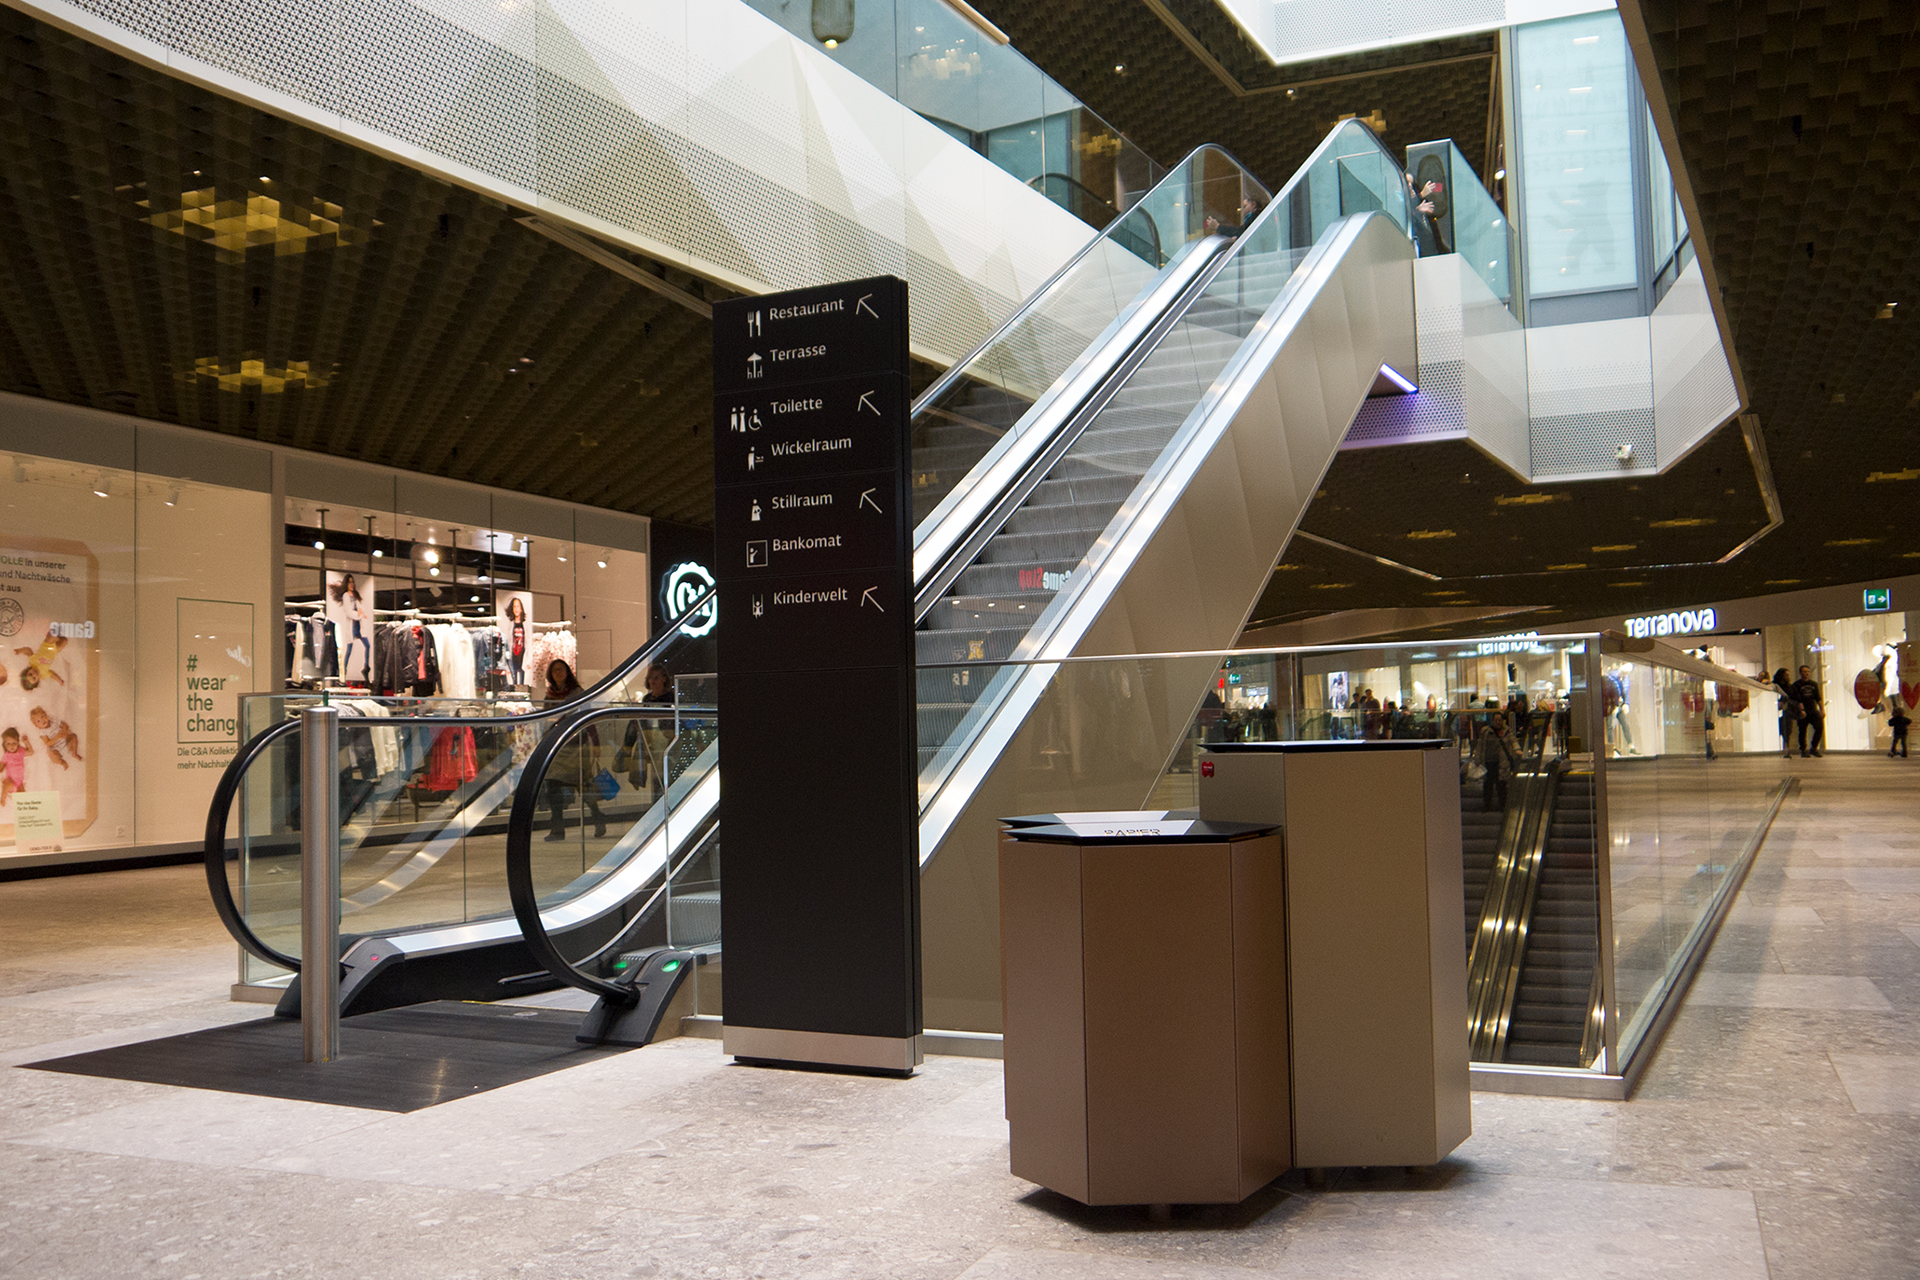 THE MALL OF SWITZERLAND - EBIKON (LUCERNA) - SVIZZERA-image-10